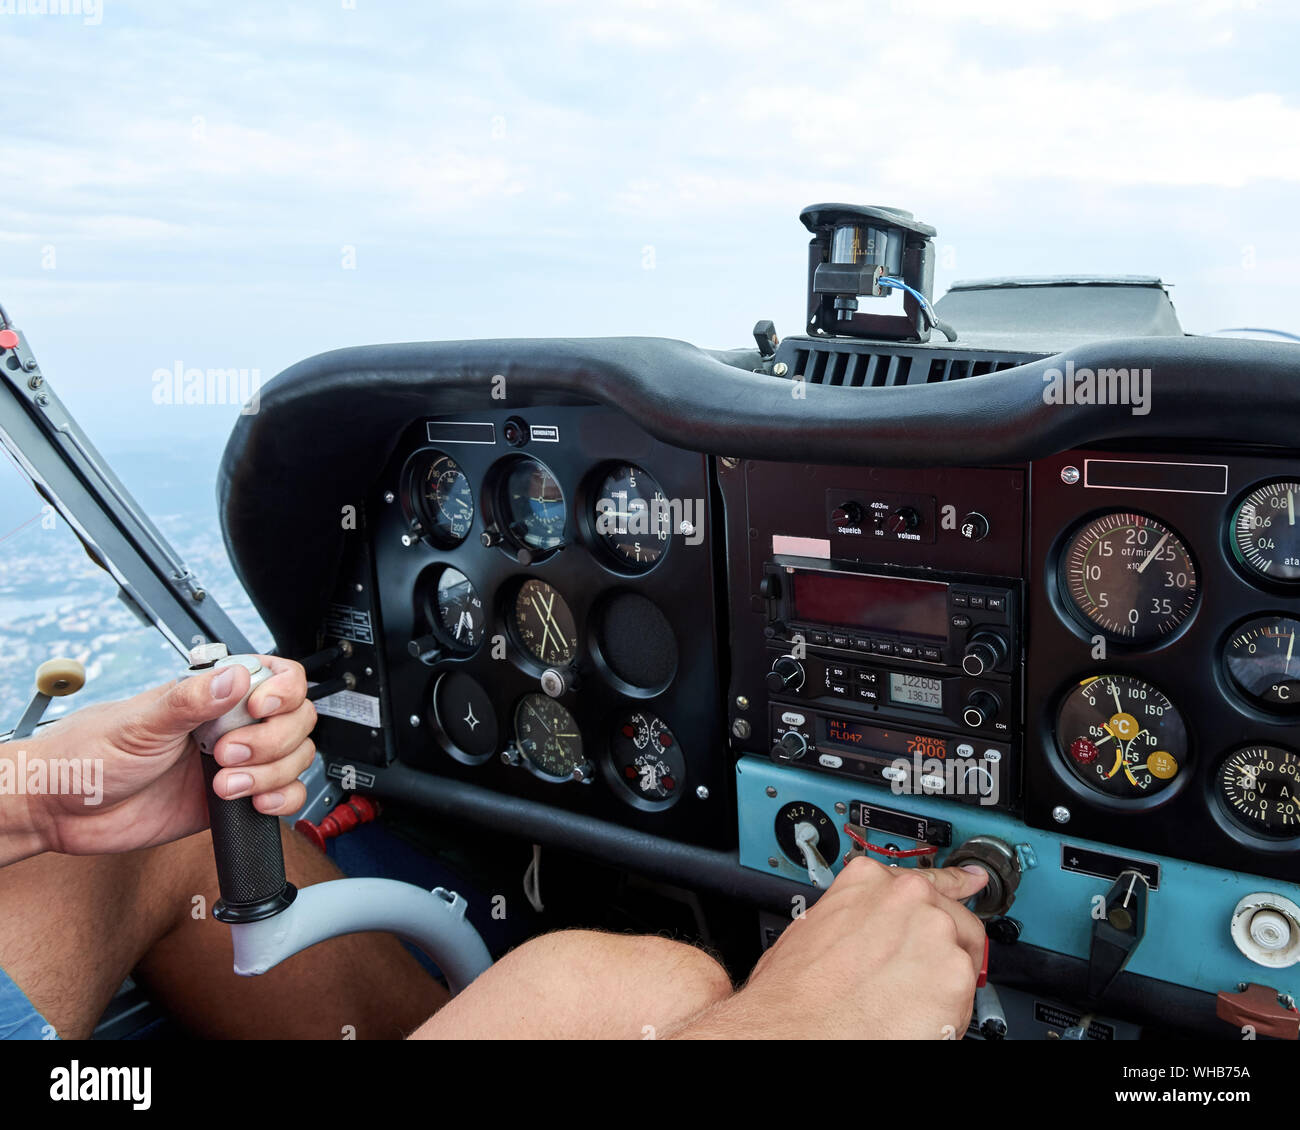 Cockpit view of a sports plane. Amateur pilot holding a hand control and throttle lever. Stock Photo